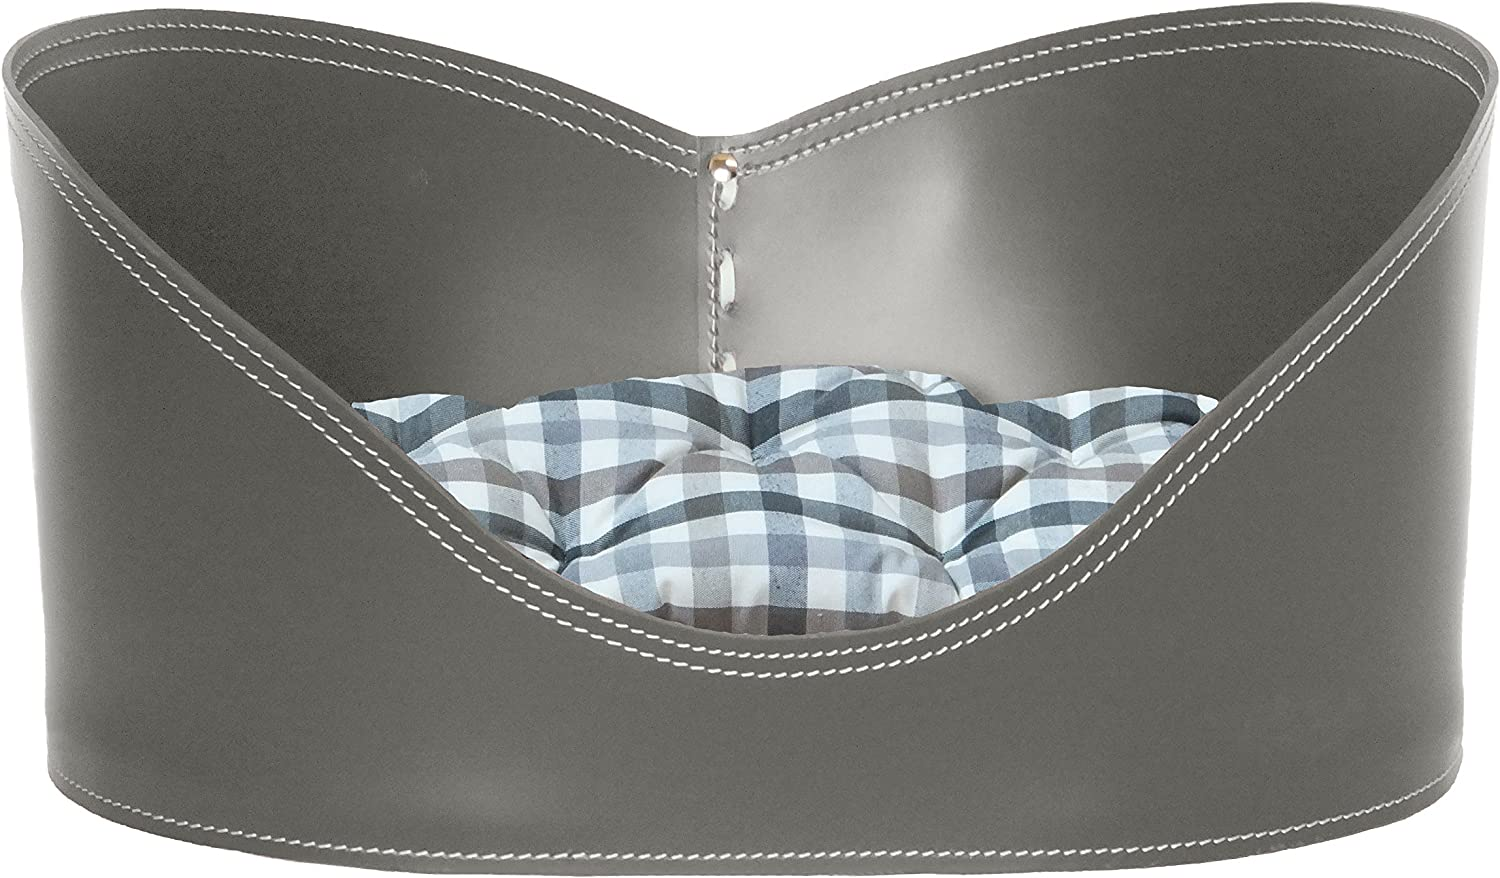 Gavemo CUORE 50  dog bed cat bed basket in leather Taupe color with pillow Gingham Fabric